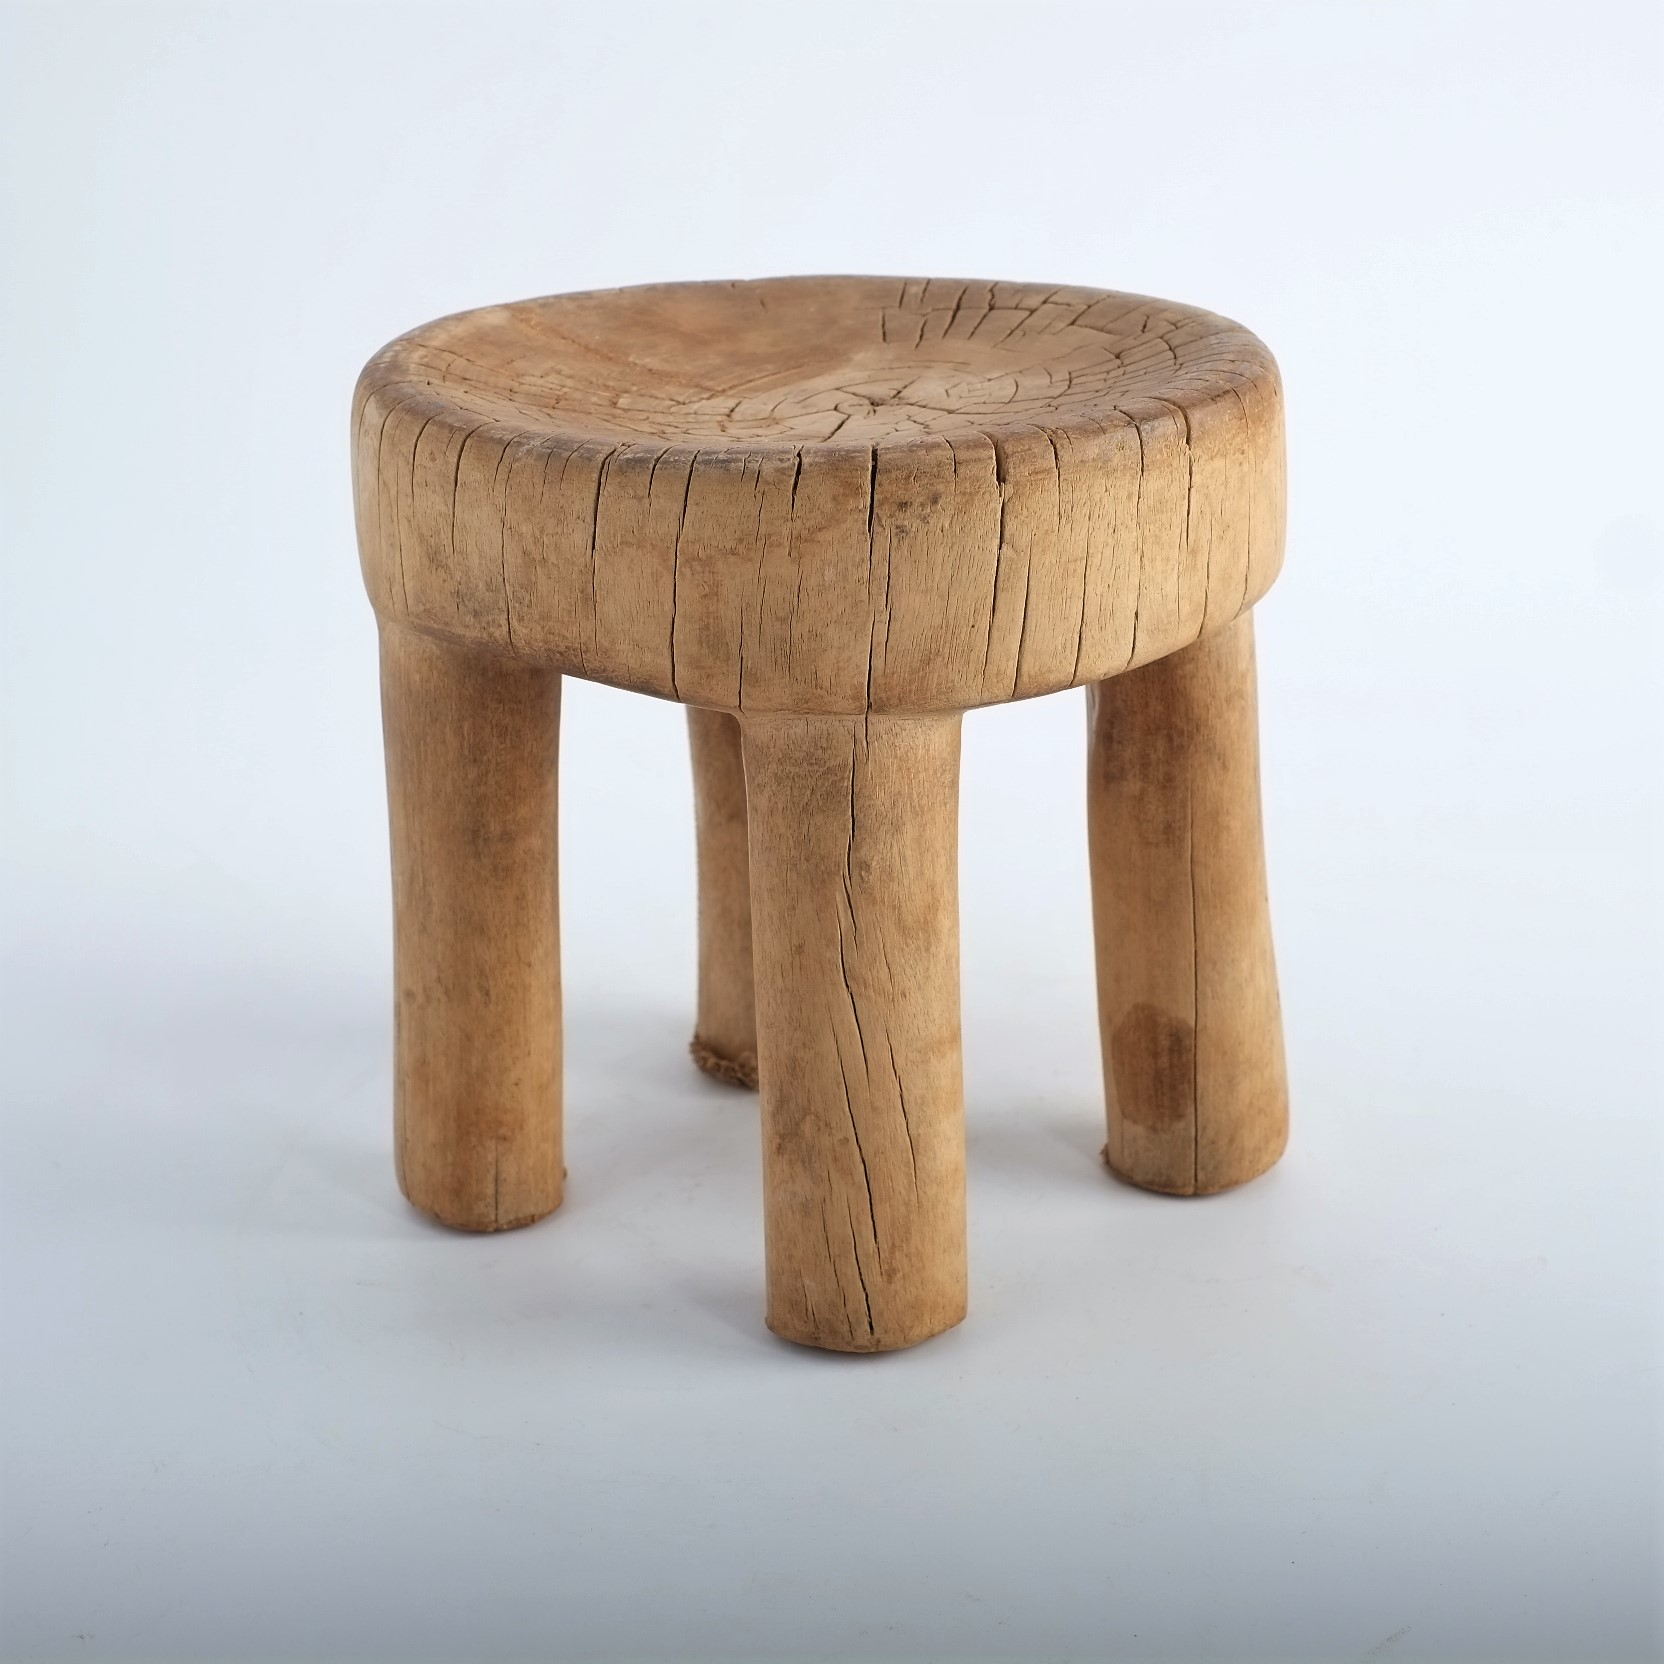 Tabouret traditionnel en bois du Burkina Faso